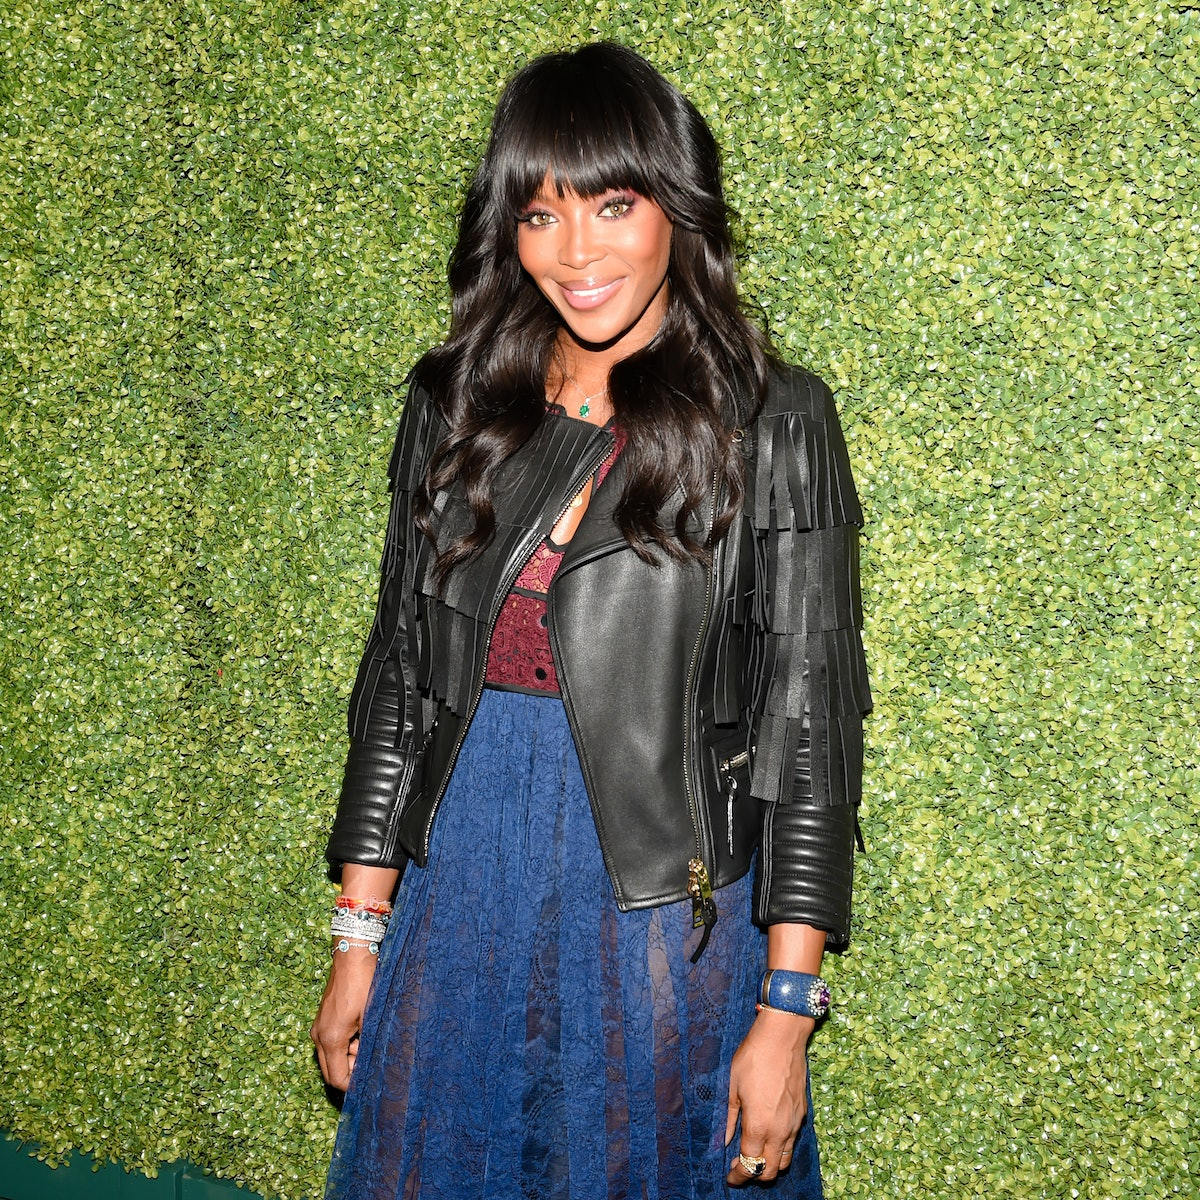 Dinner Honoring British Artist ED ATKINS Hosted by BURBERRY, W MAGAZINE, NEW MUSEUM, and NAOMI CAMPB...